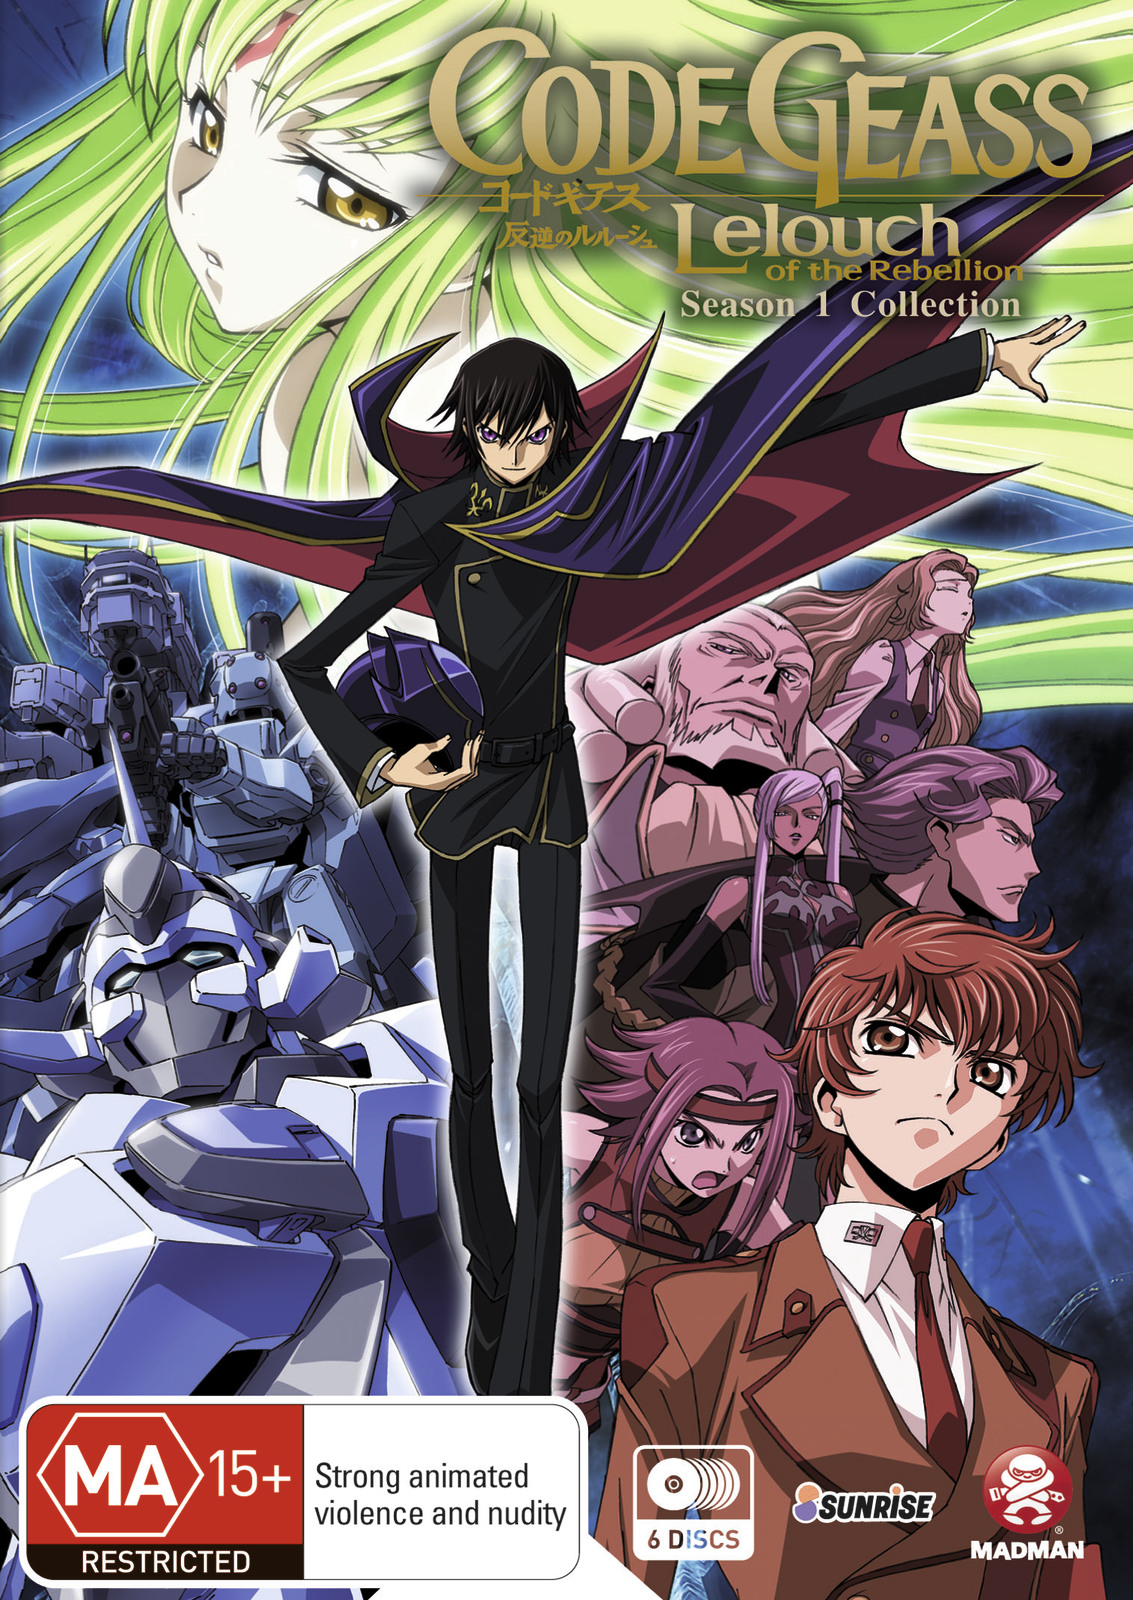 Code Geass: Lelouch of the Rebellion Season 1 Collection (Slimpack) on DVD image